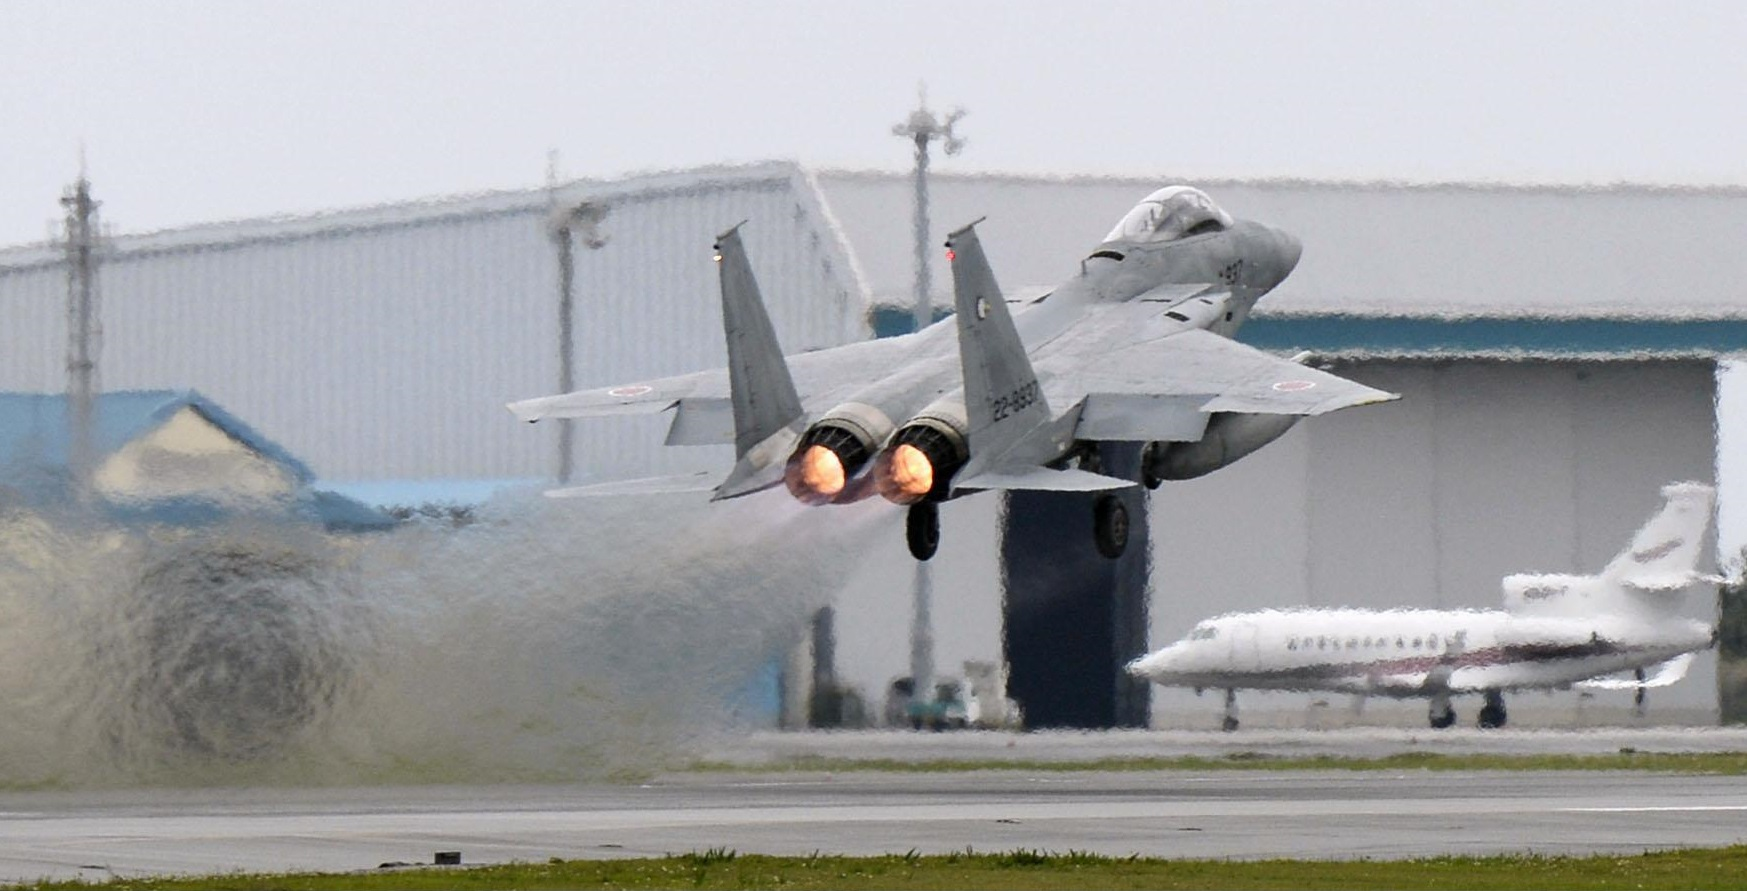 An F-15 fighter takes off on an intercept mission from the Air Self-Defense Force's Naha base in Okinawa, interrupting a training session that was open to the media. | KYODO